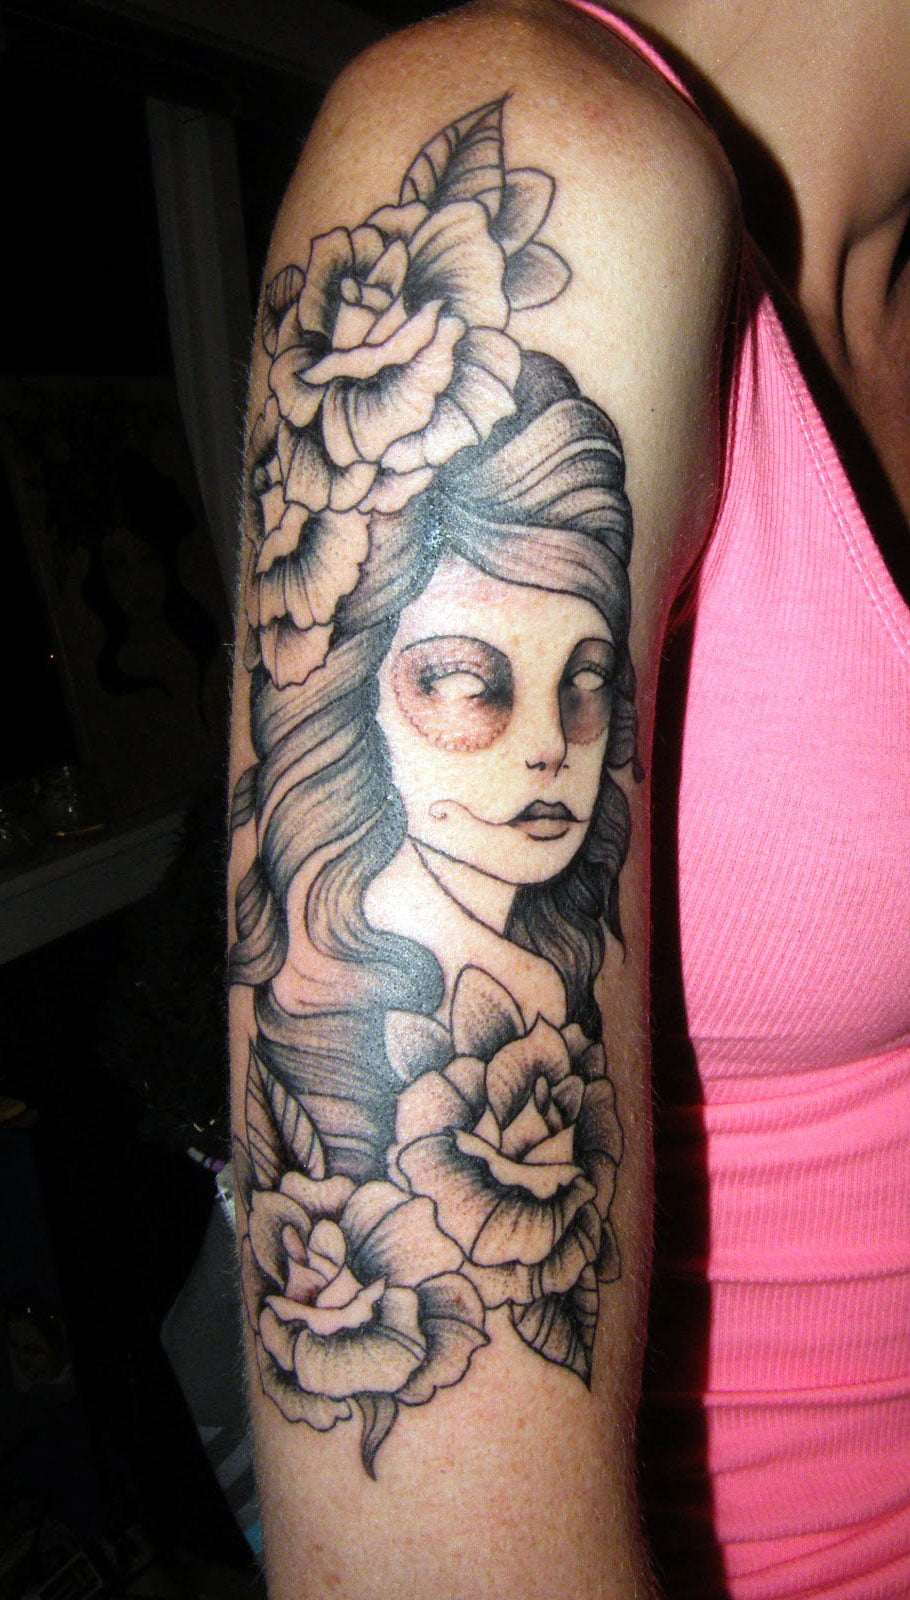 Girl Tattoos On Arm